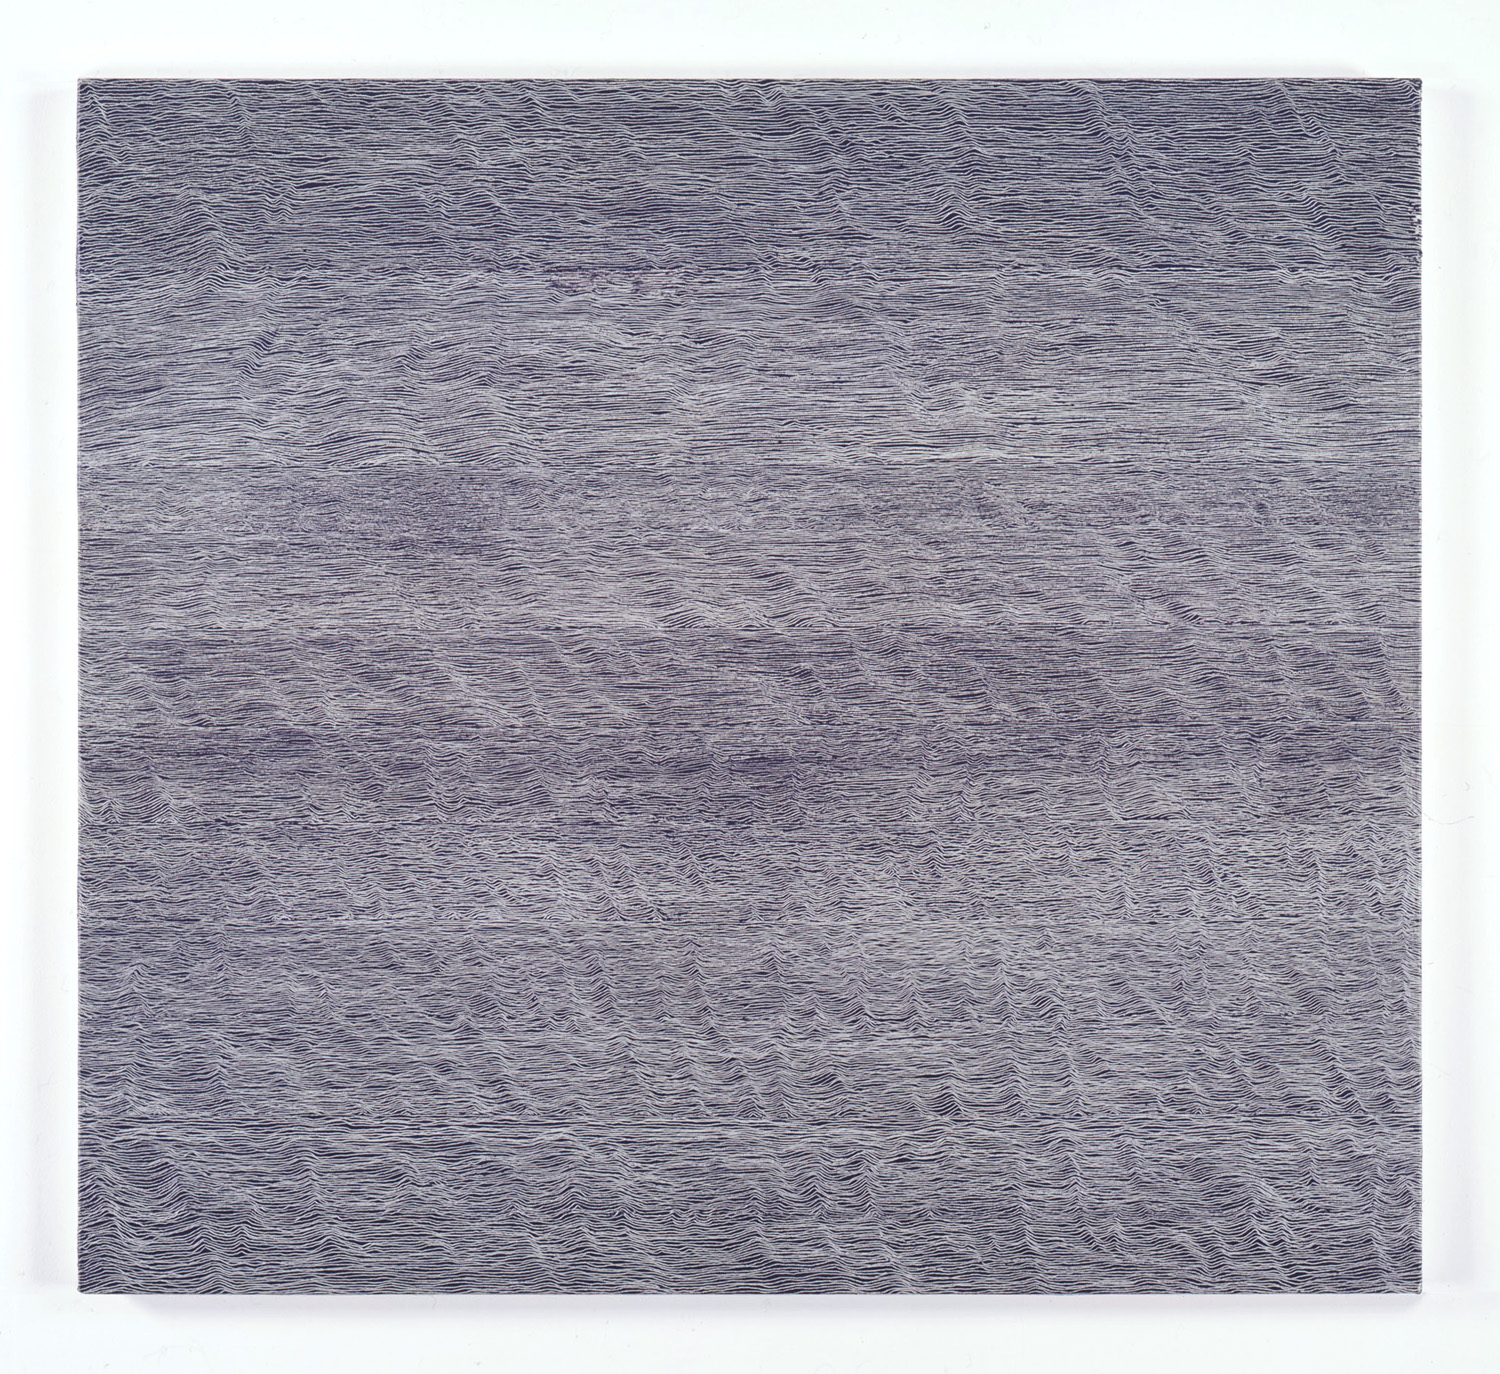 Untitled-Breath Sliver<br>Oil on canvas, 96.5 x 106 cm 1997